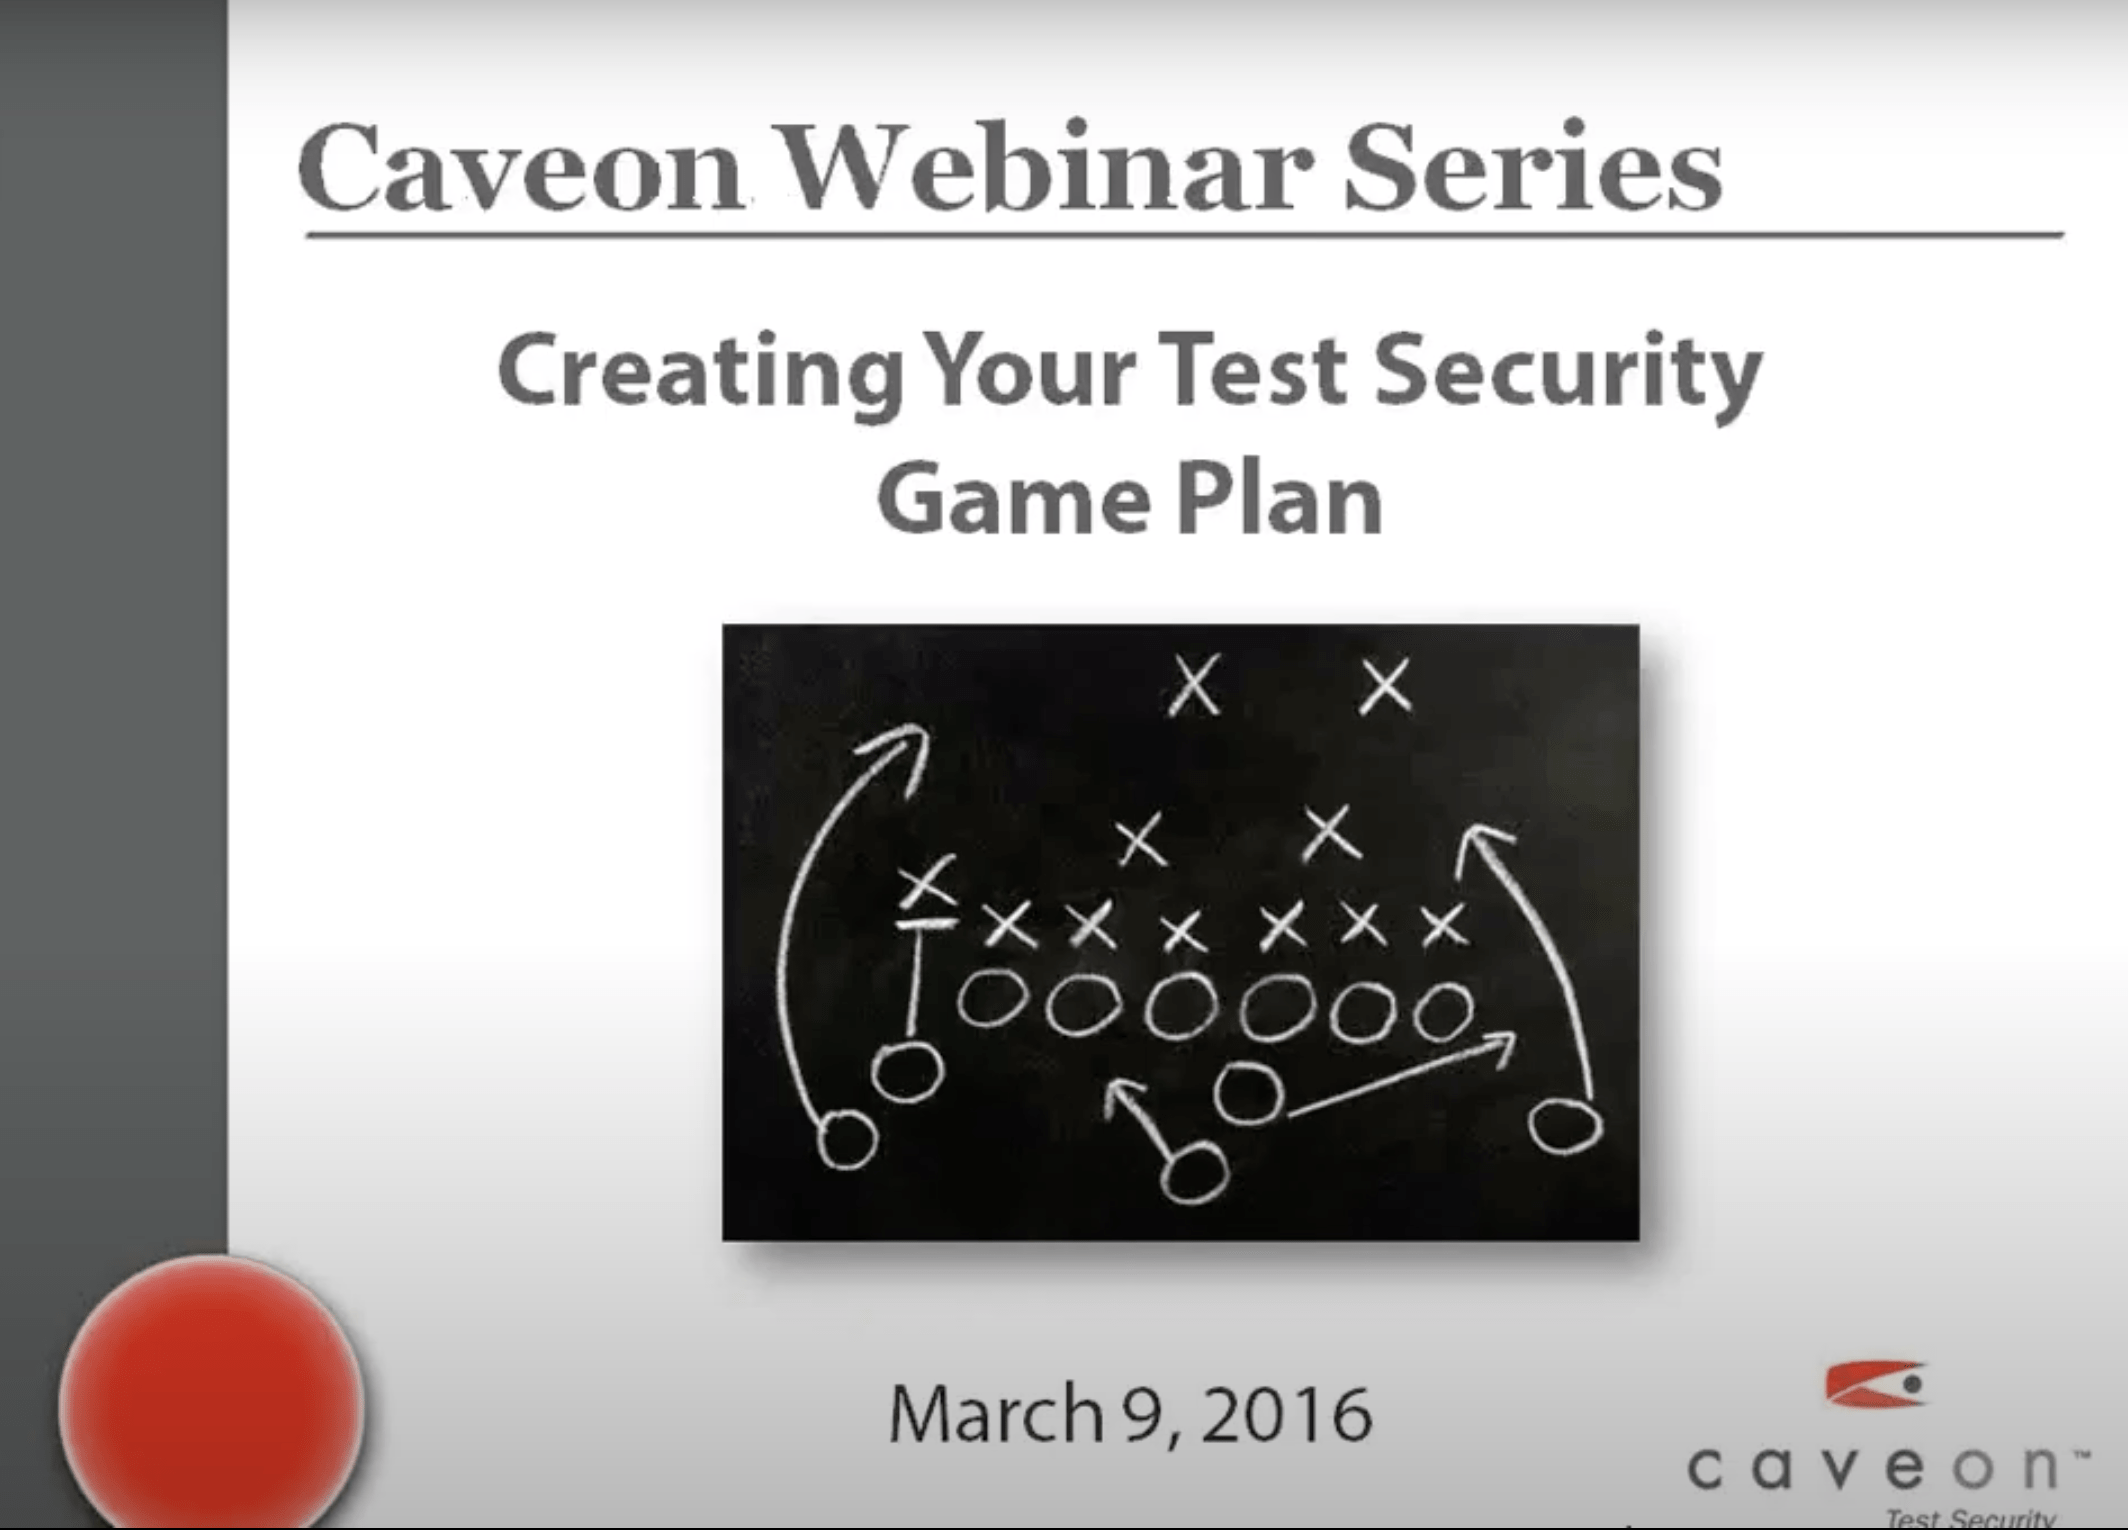 Creating Your Test Security Game Plan